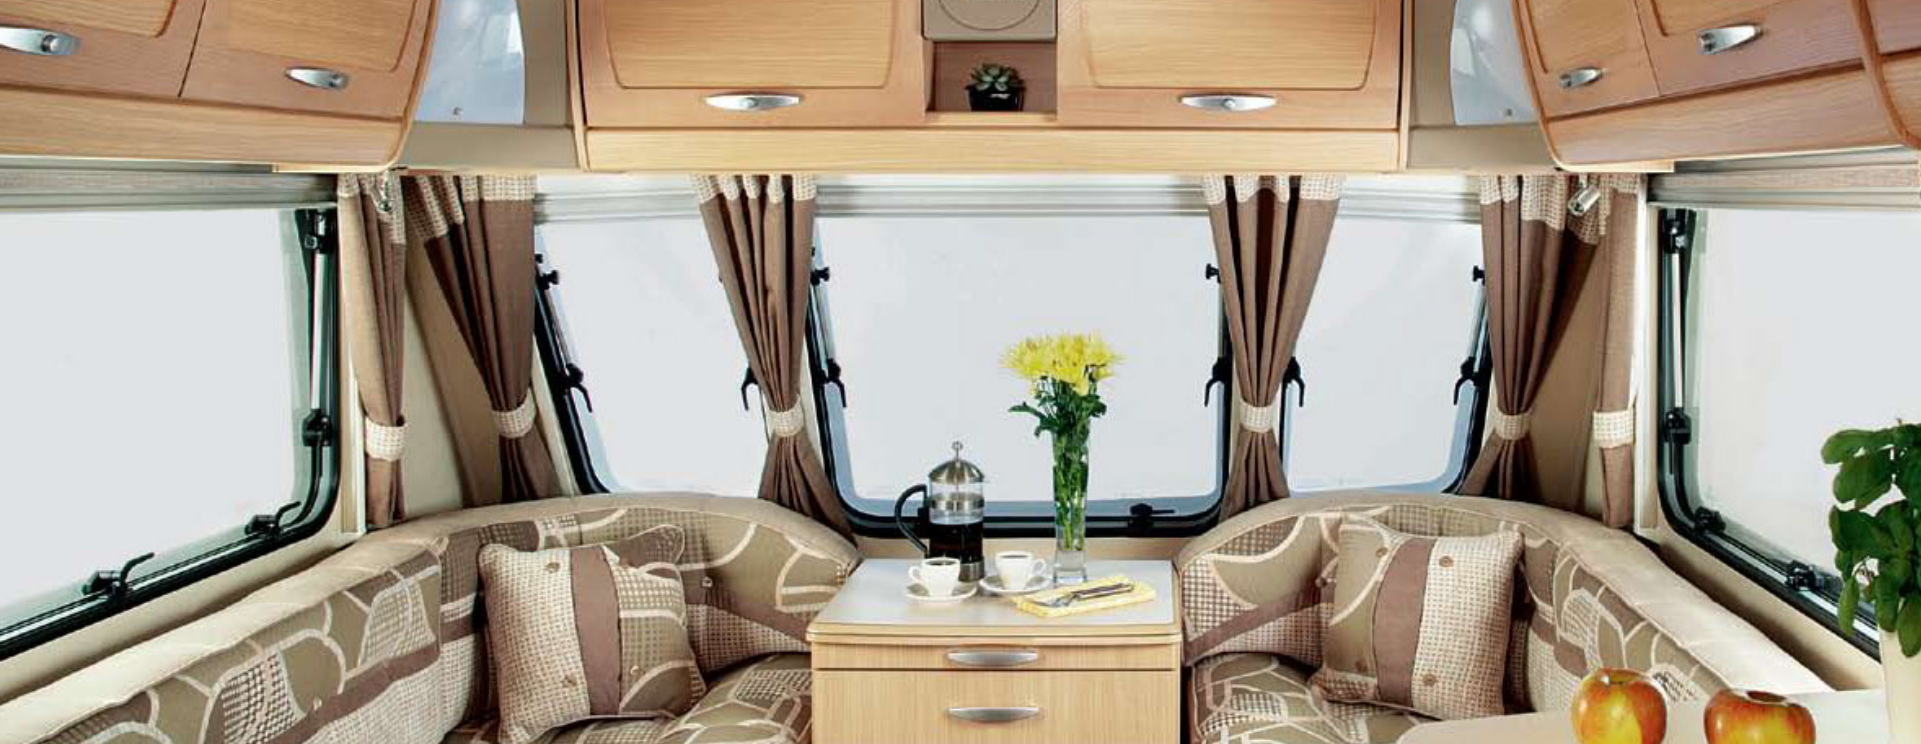 Abbey Caravans Interior